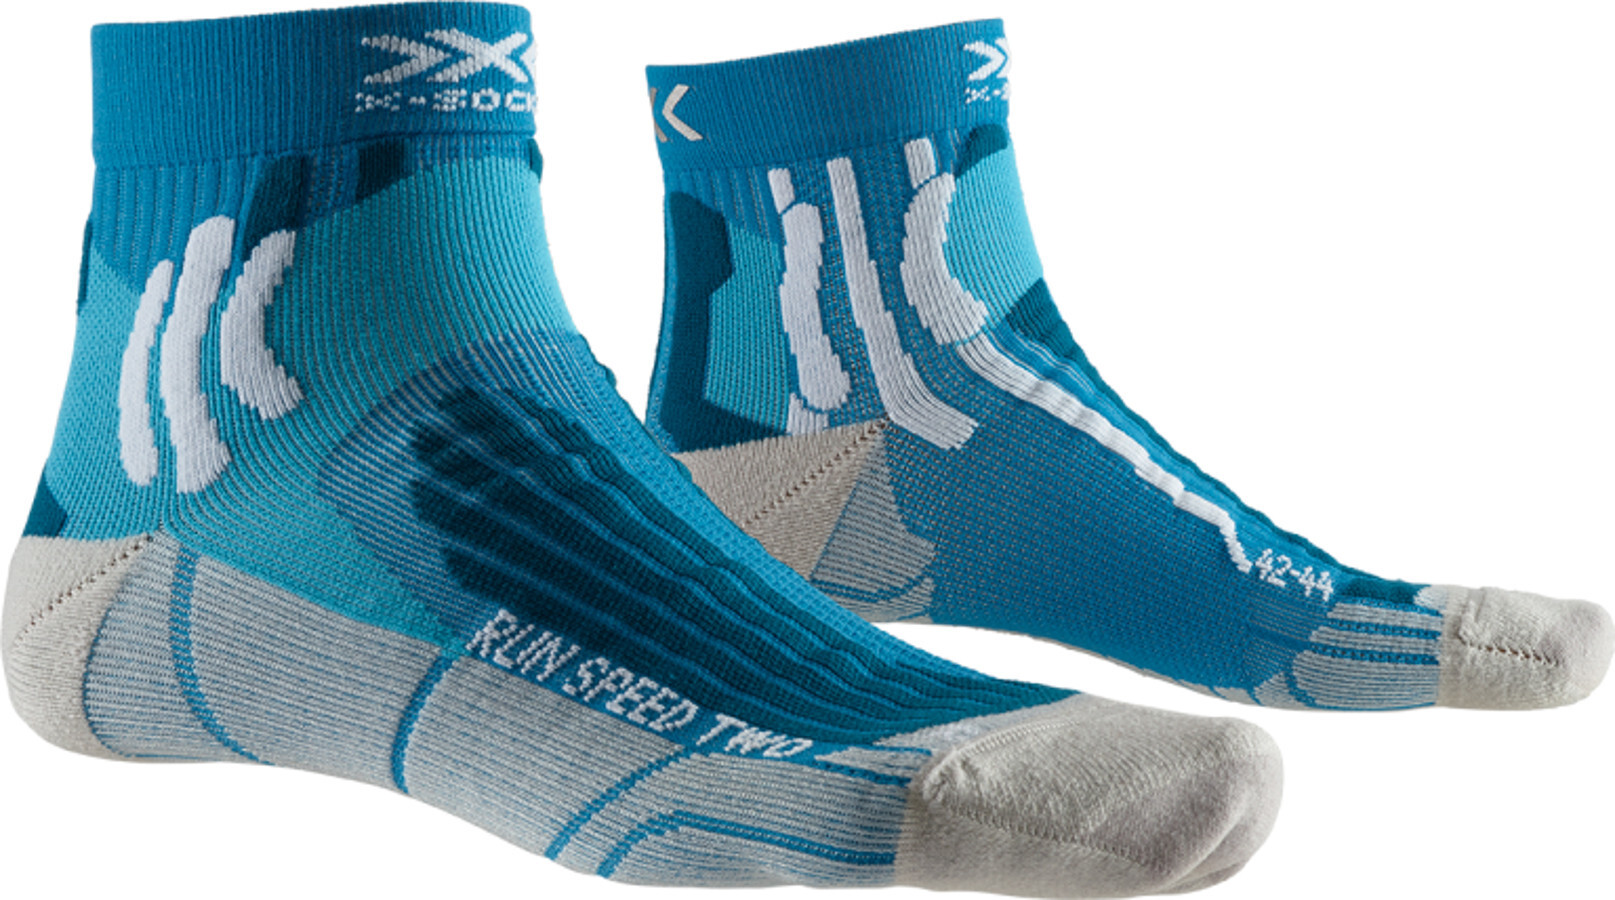 X-Socks Run Speed Two Strømper Herrer, teal blue/pearl grey (2019) | Kompressionstøj